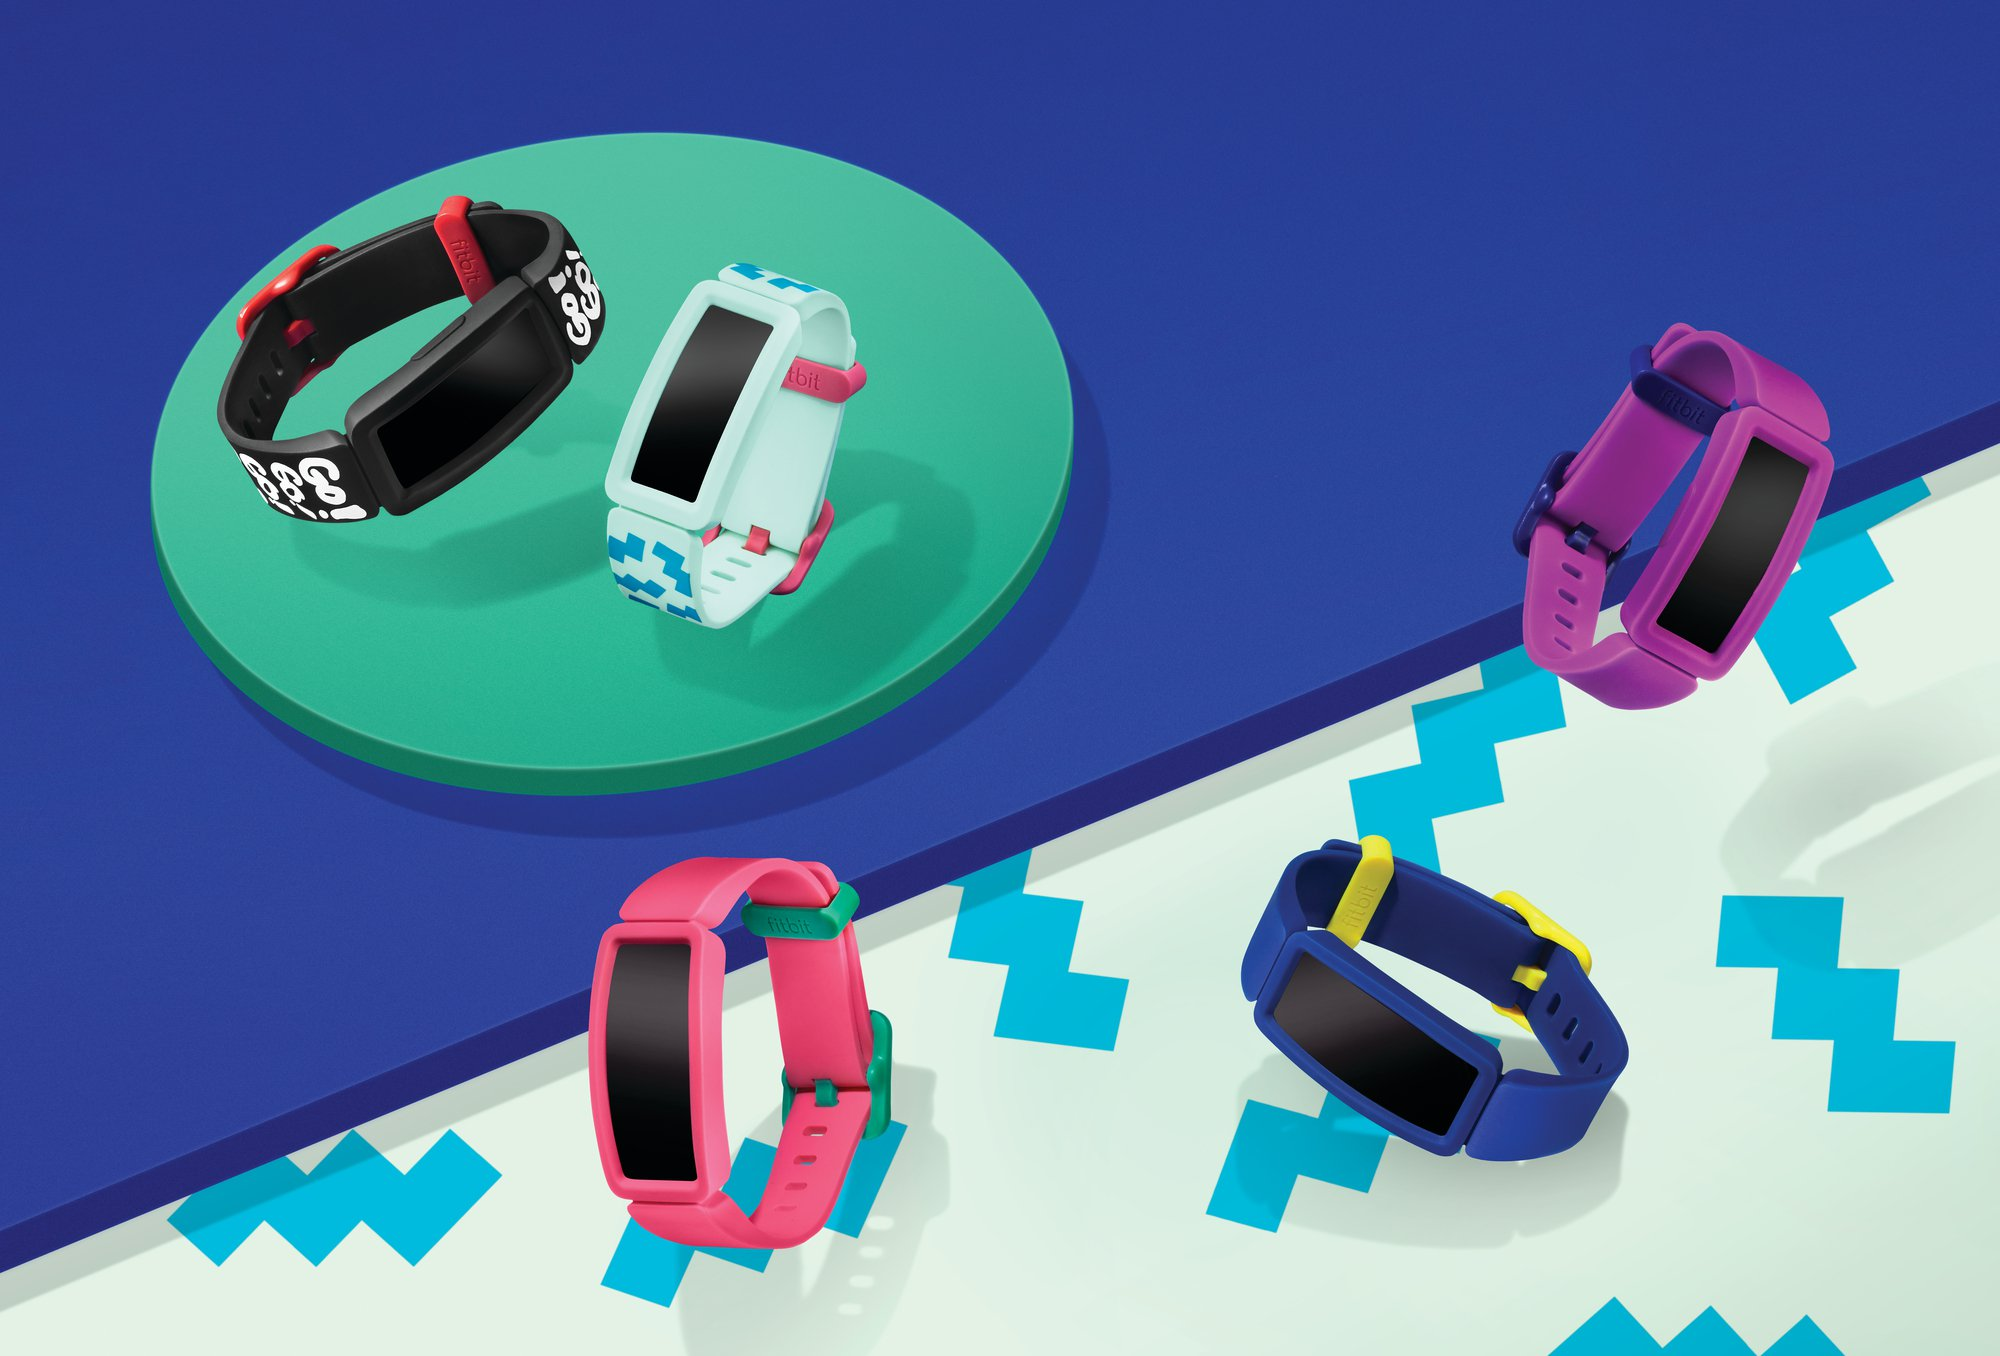 Give a kid a fitness tracker and life will become a dangerous competition